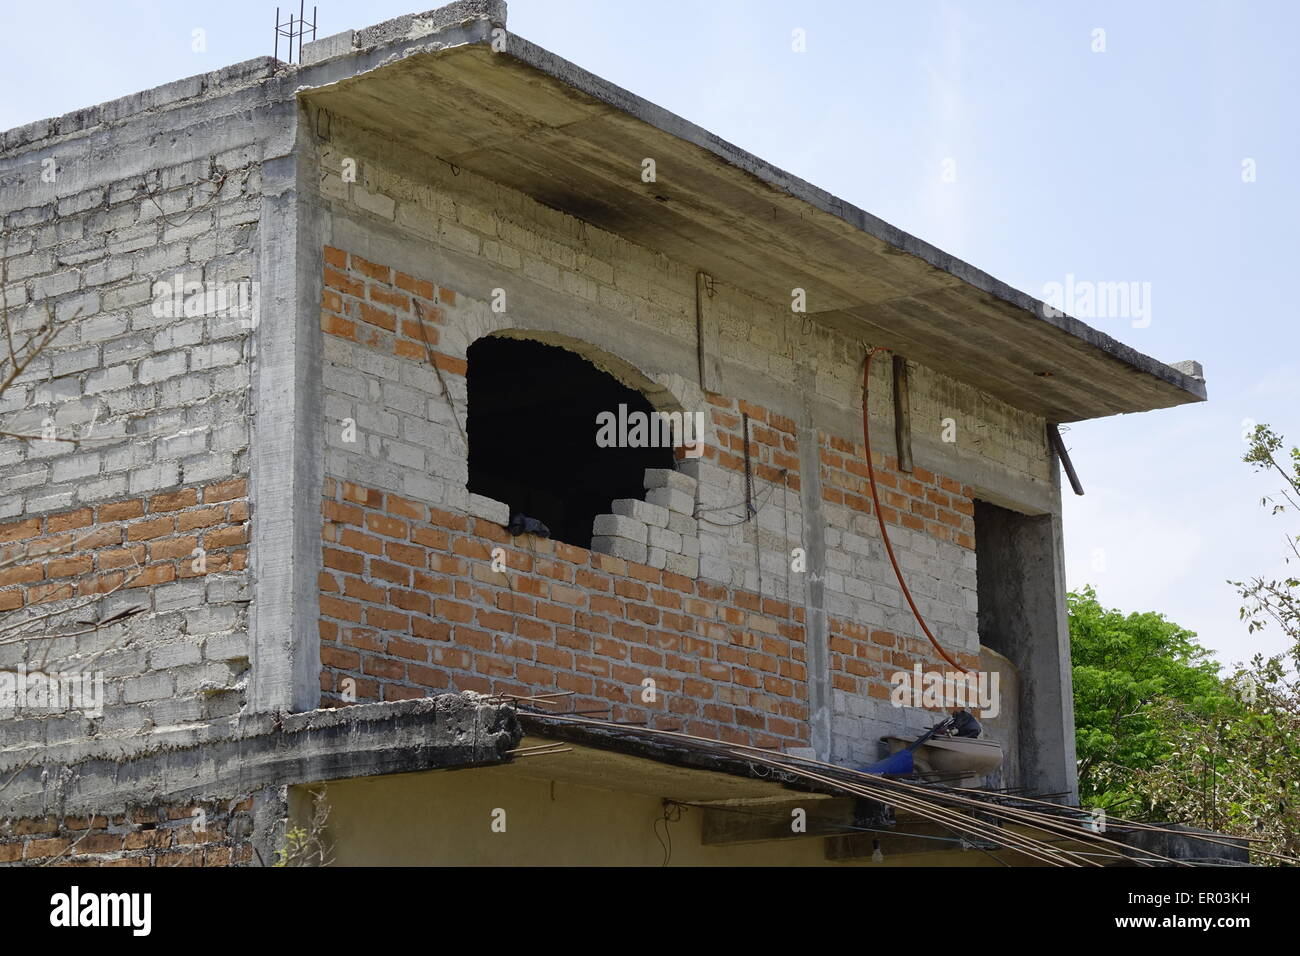 Partially completed upper floor of farm building, vicinity of El Tuito, Mexico - Stock Image